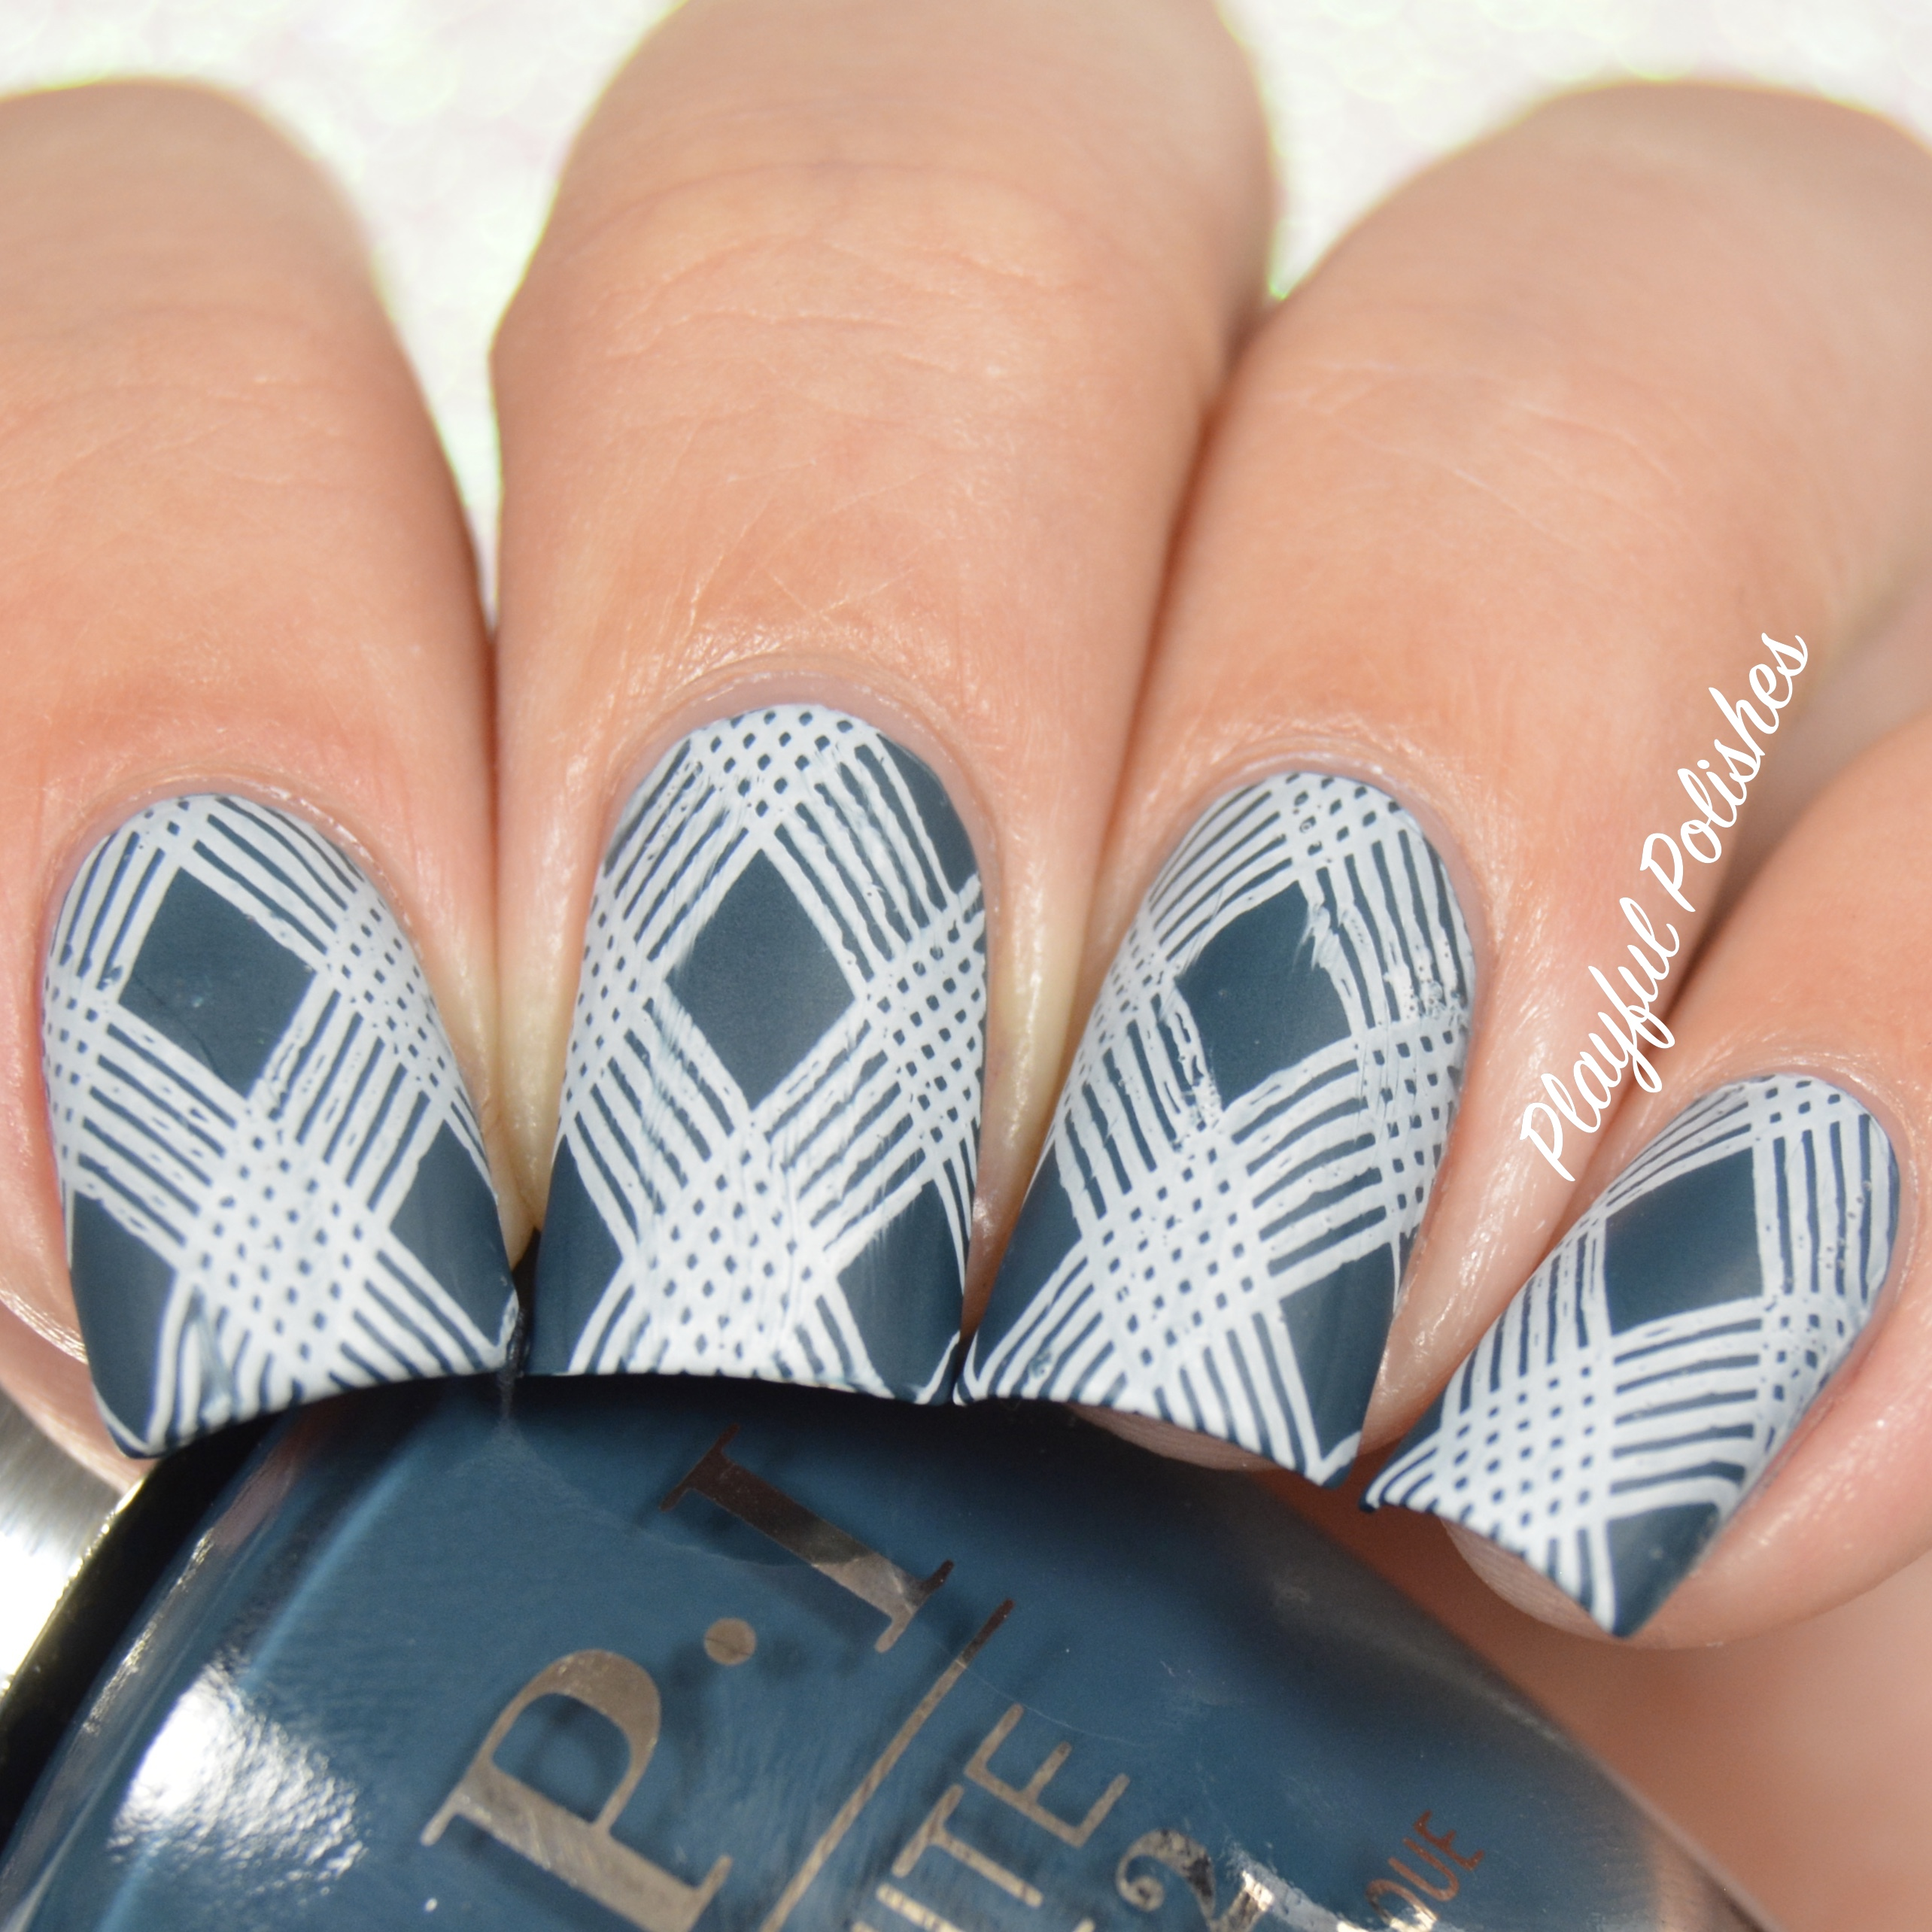 31DC2016 - Inspired by a Pattern nail art by Playful Polishes